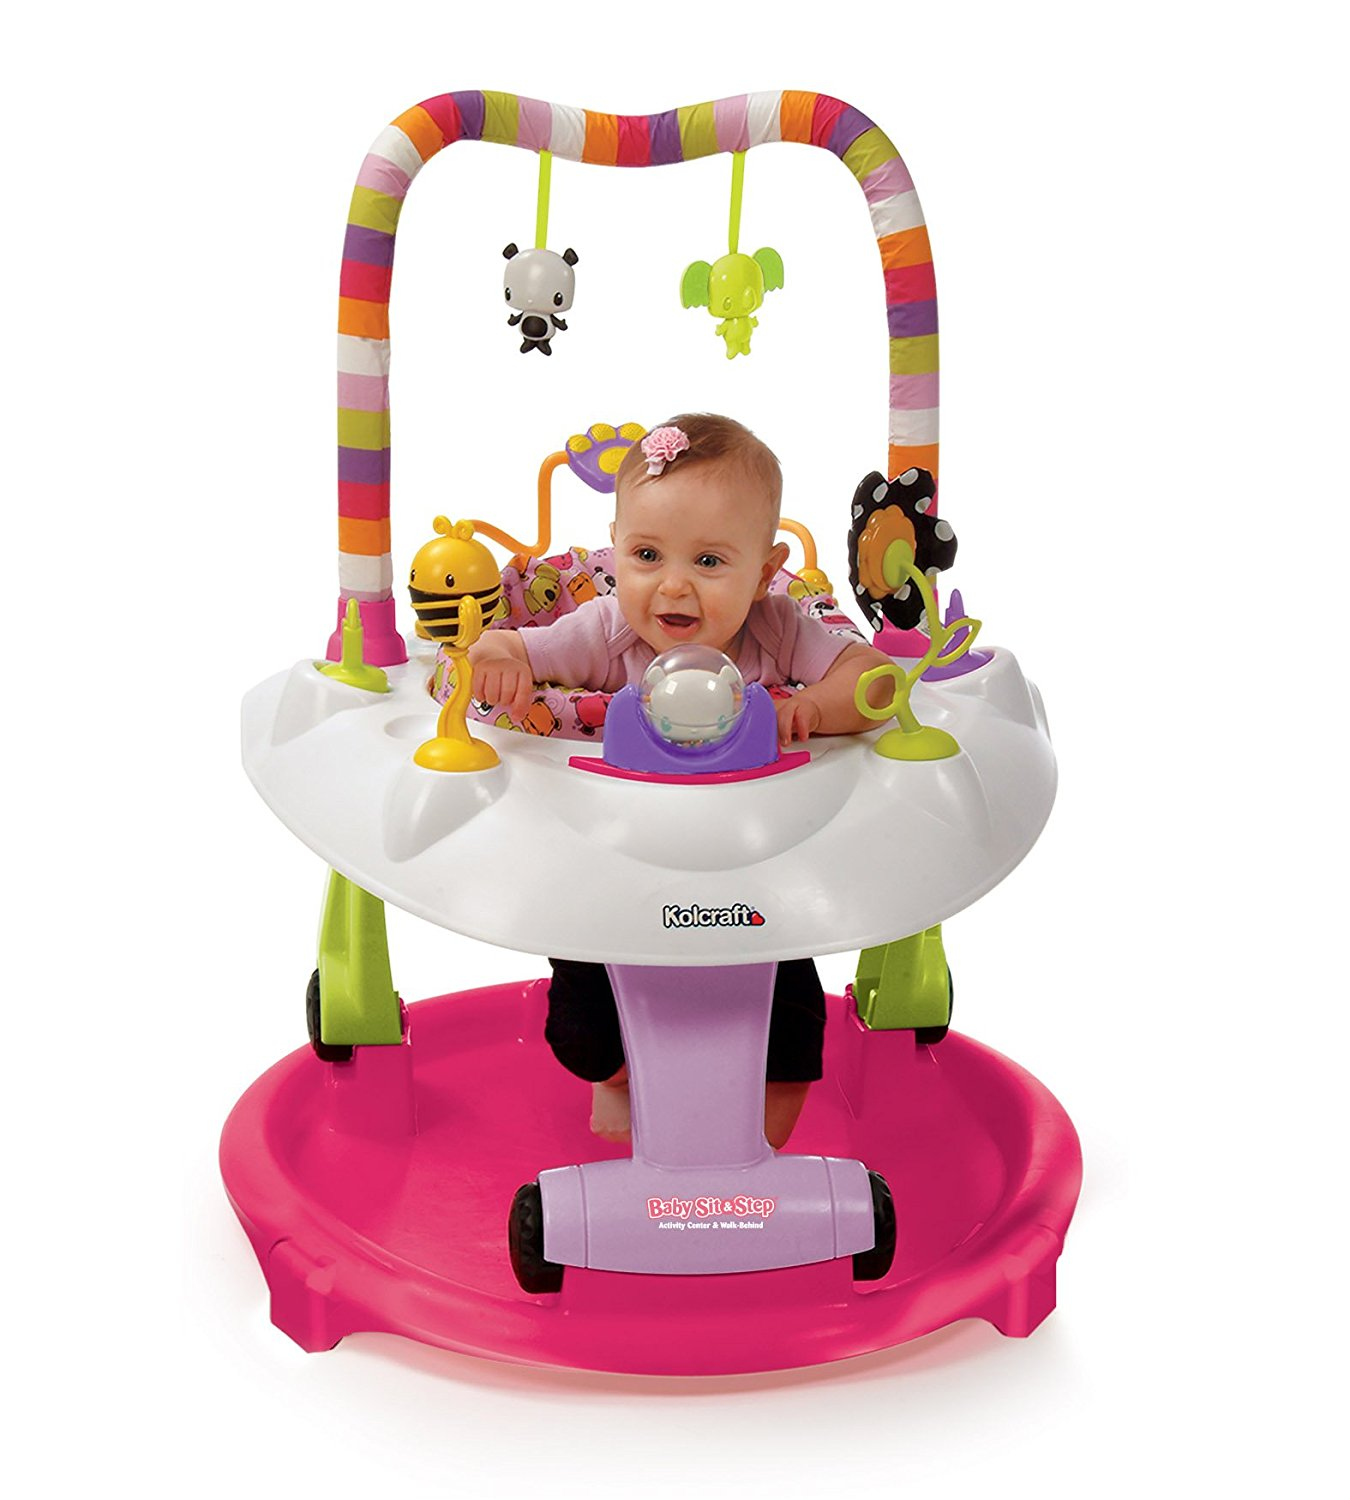 Kolcraft Baby Sit and Step 2-in-1 Activity Center, Pink Bear Hugs